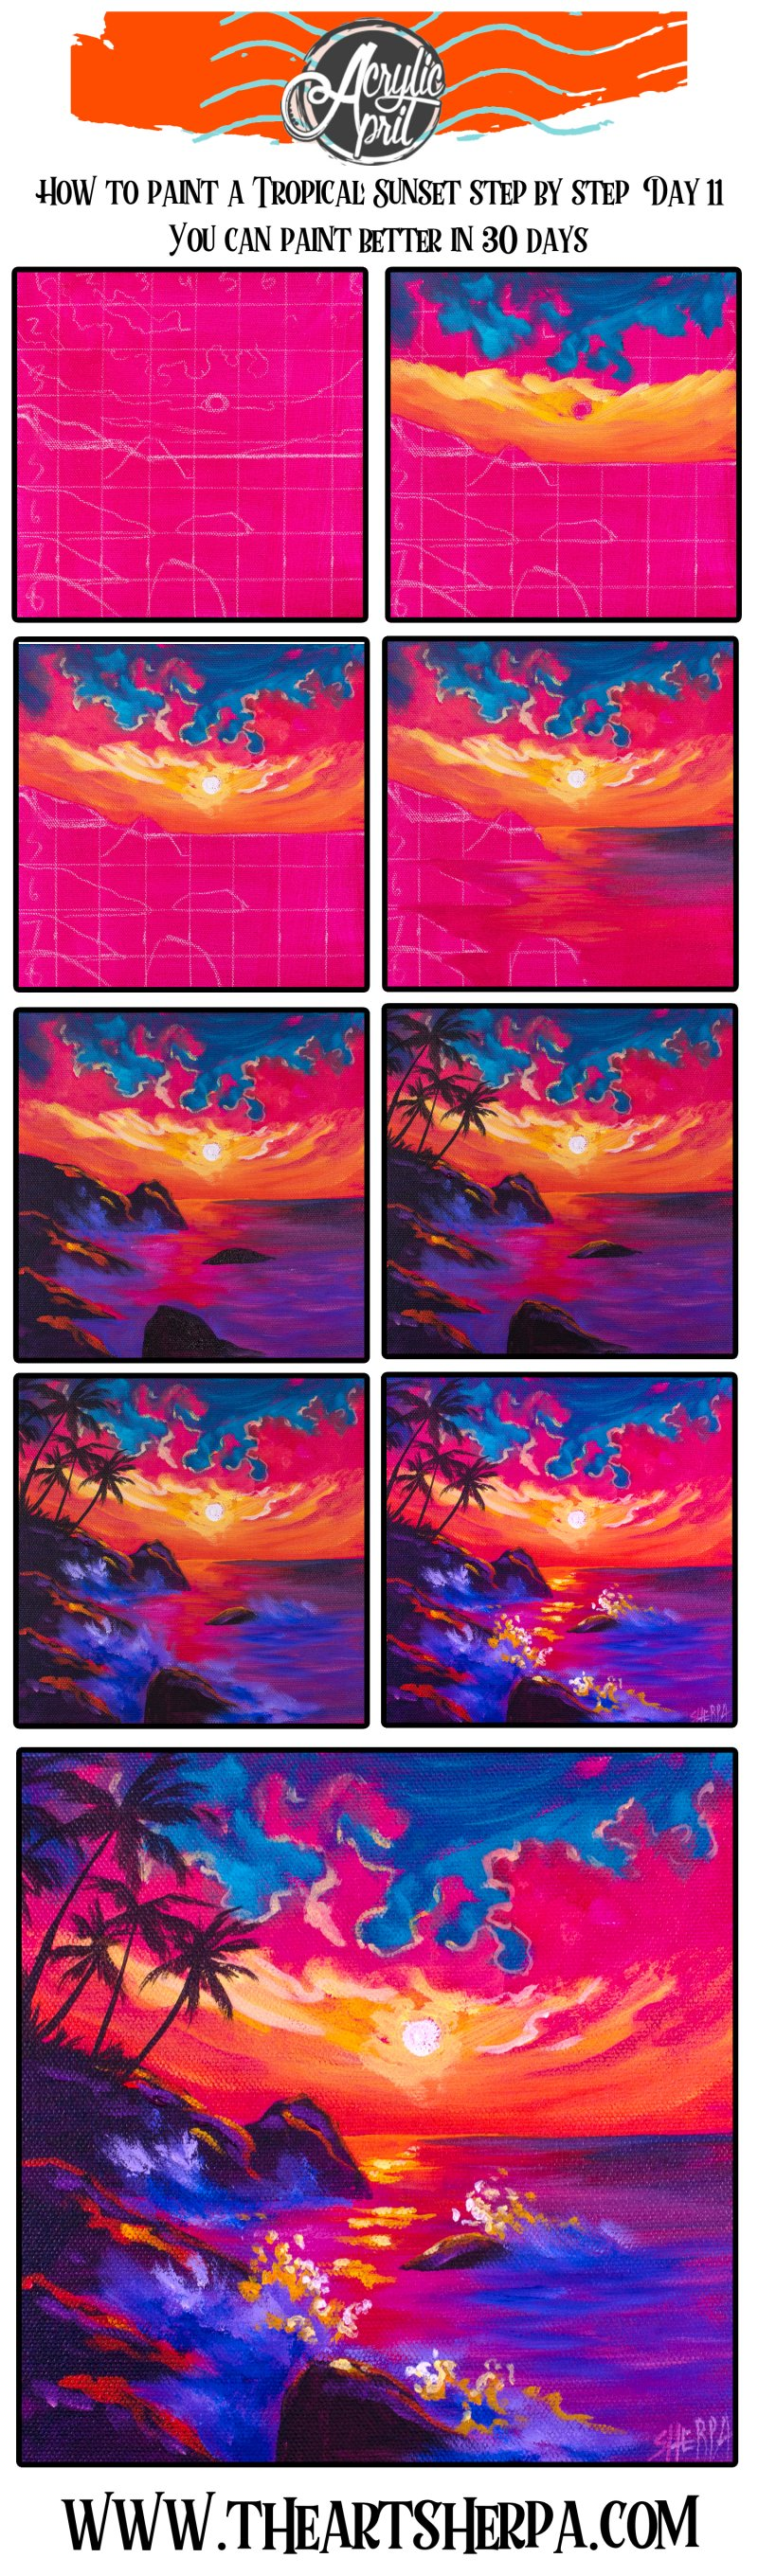 Acrylic April 2020 Step by Step 11.jpg